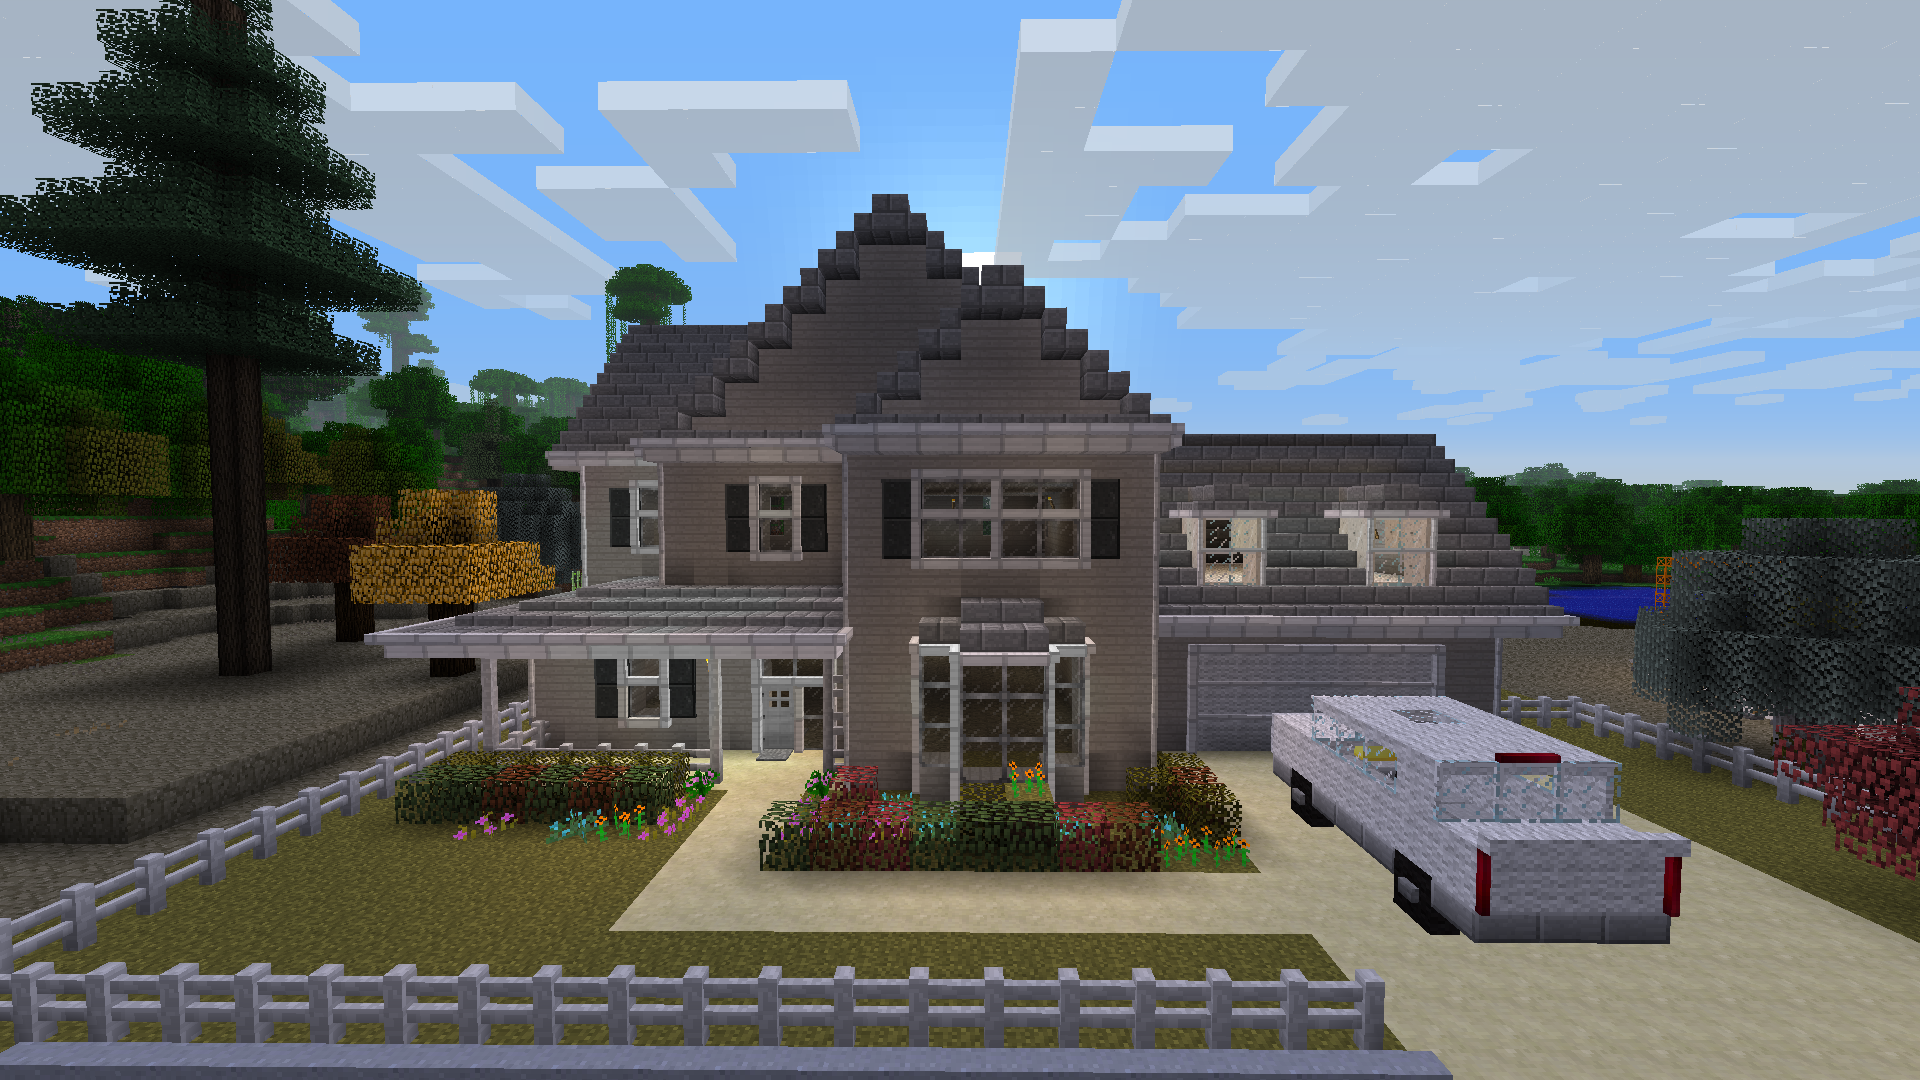 Epic Minecraft House Done In The Style Of A Treehouse Description From Pinterest Com Epic Minecraft Houses Minecraft House Designs Minecraft Houses Blueprints